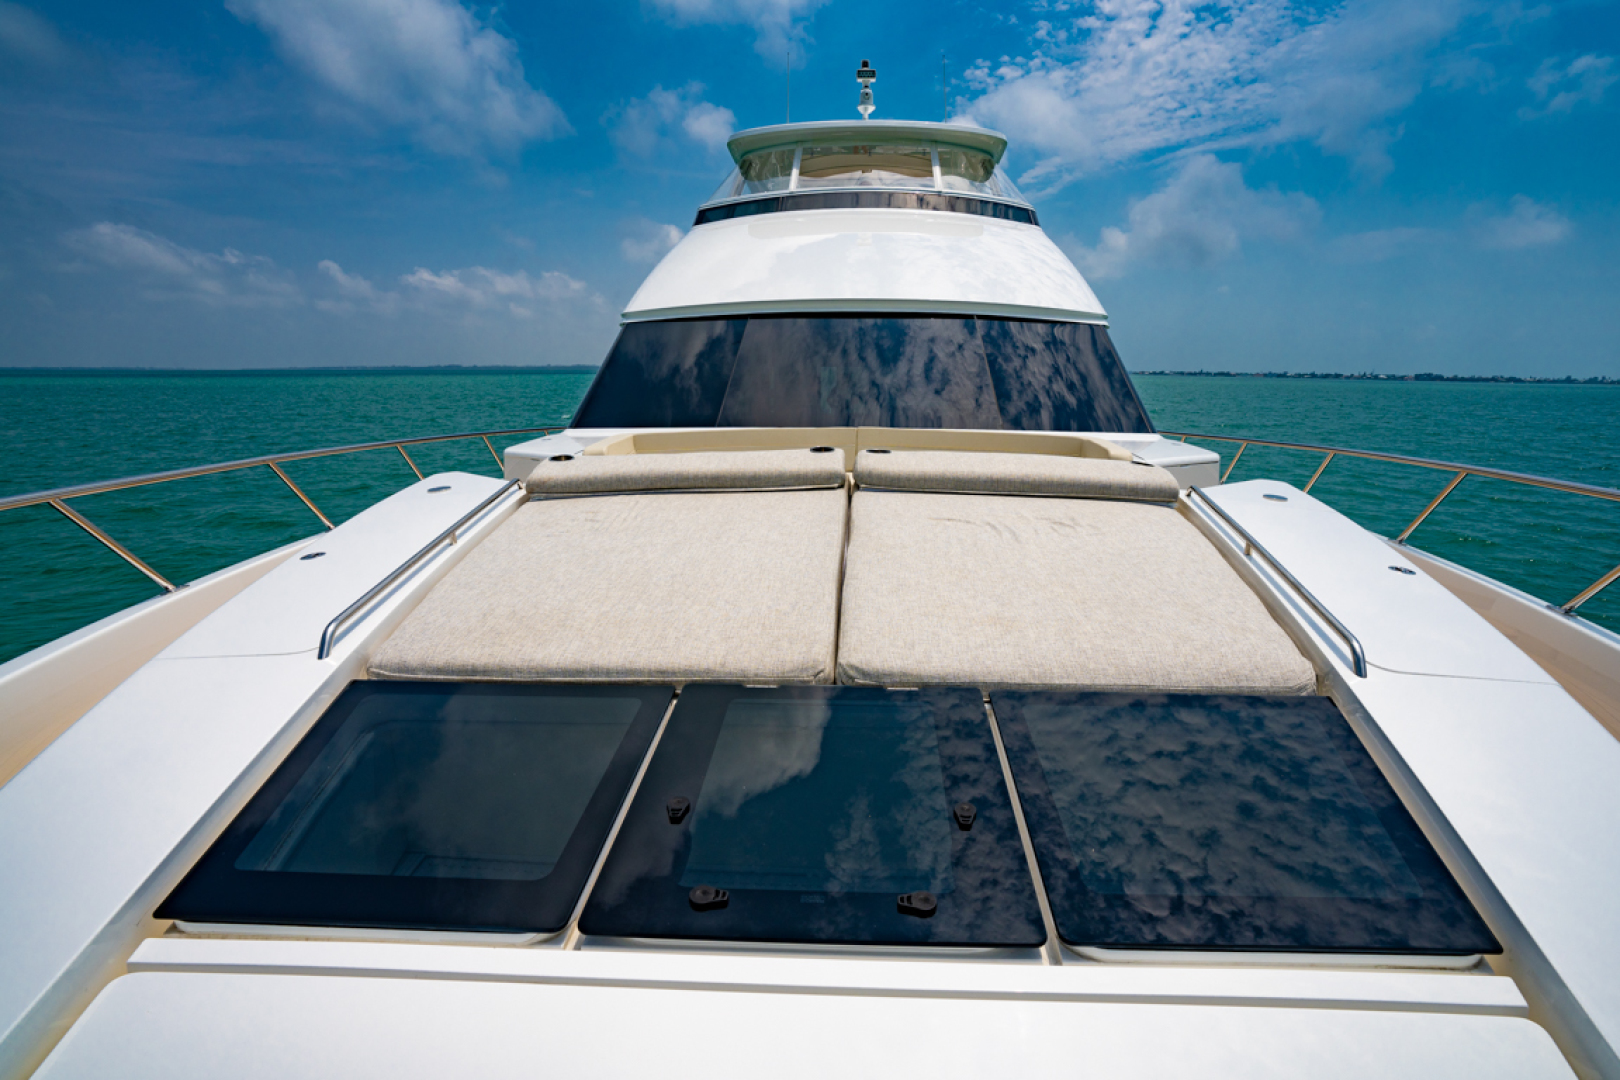 Viking-82 Cockpit MY 2019-Make It Happen Sanibel -Florida-United States-Viking 82CPMY Make It Happen Fwd Sunlounge-1378570 | Thumbnail